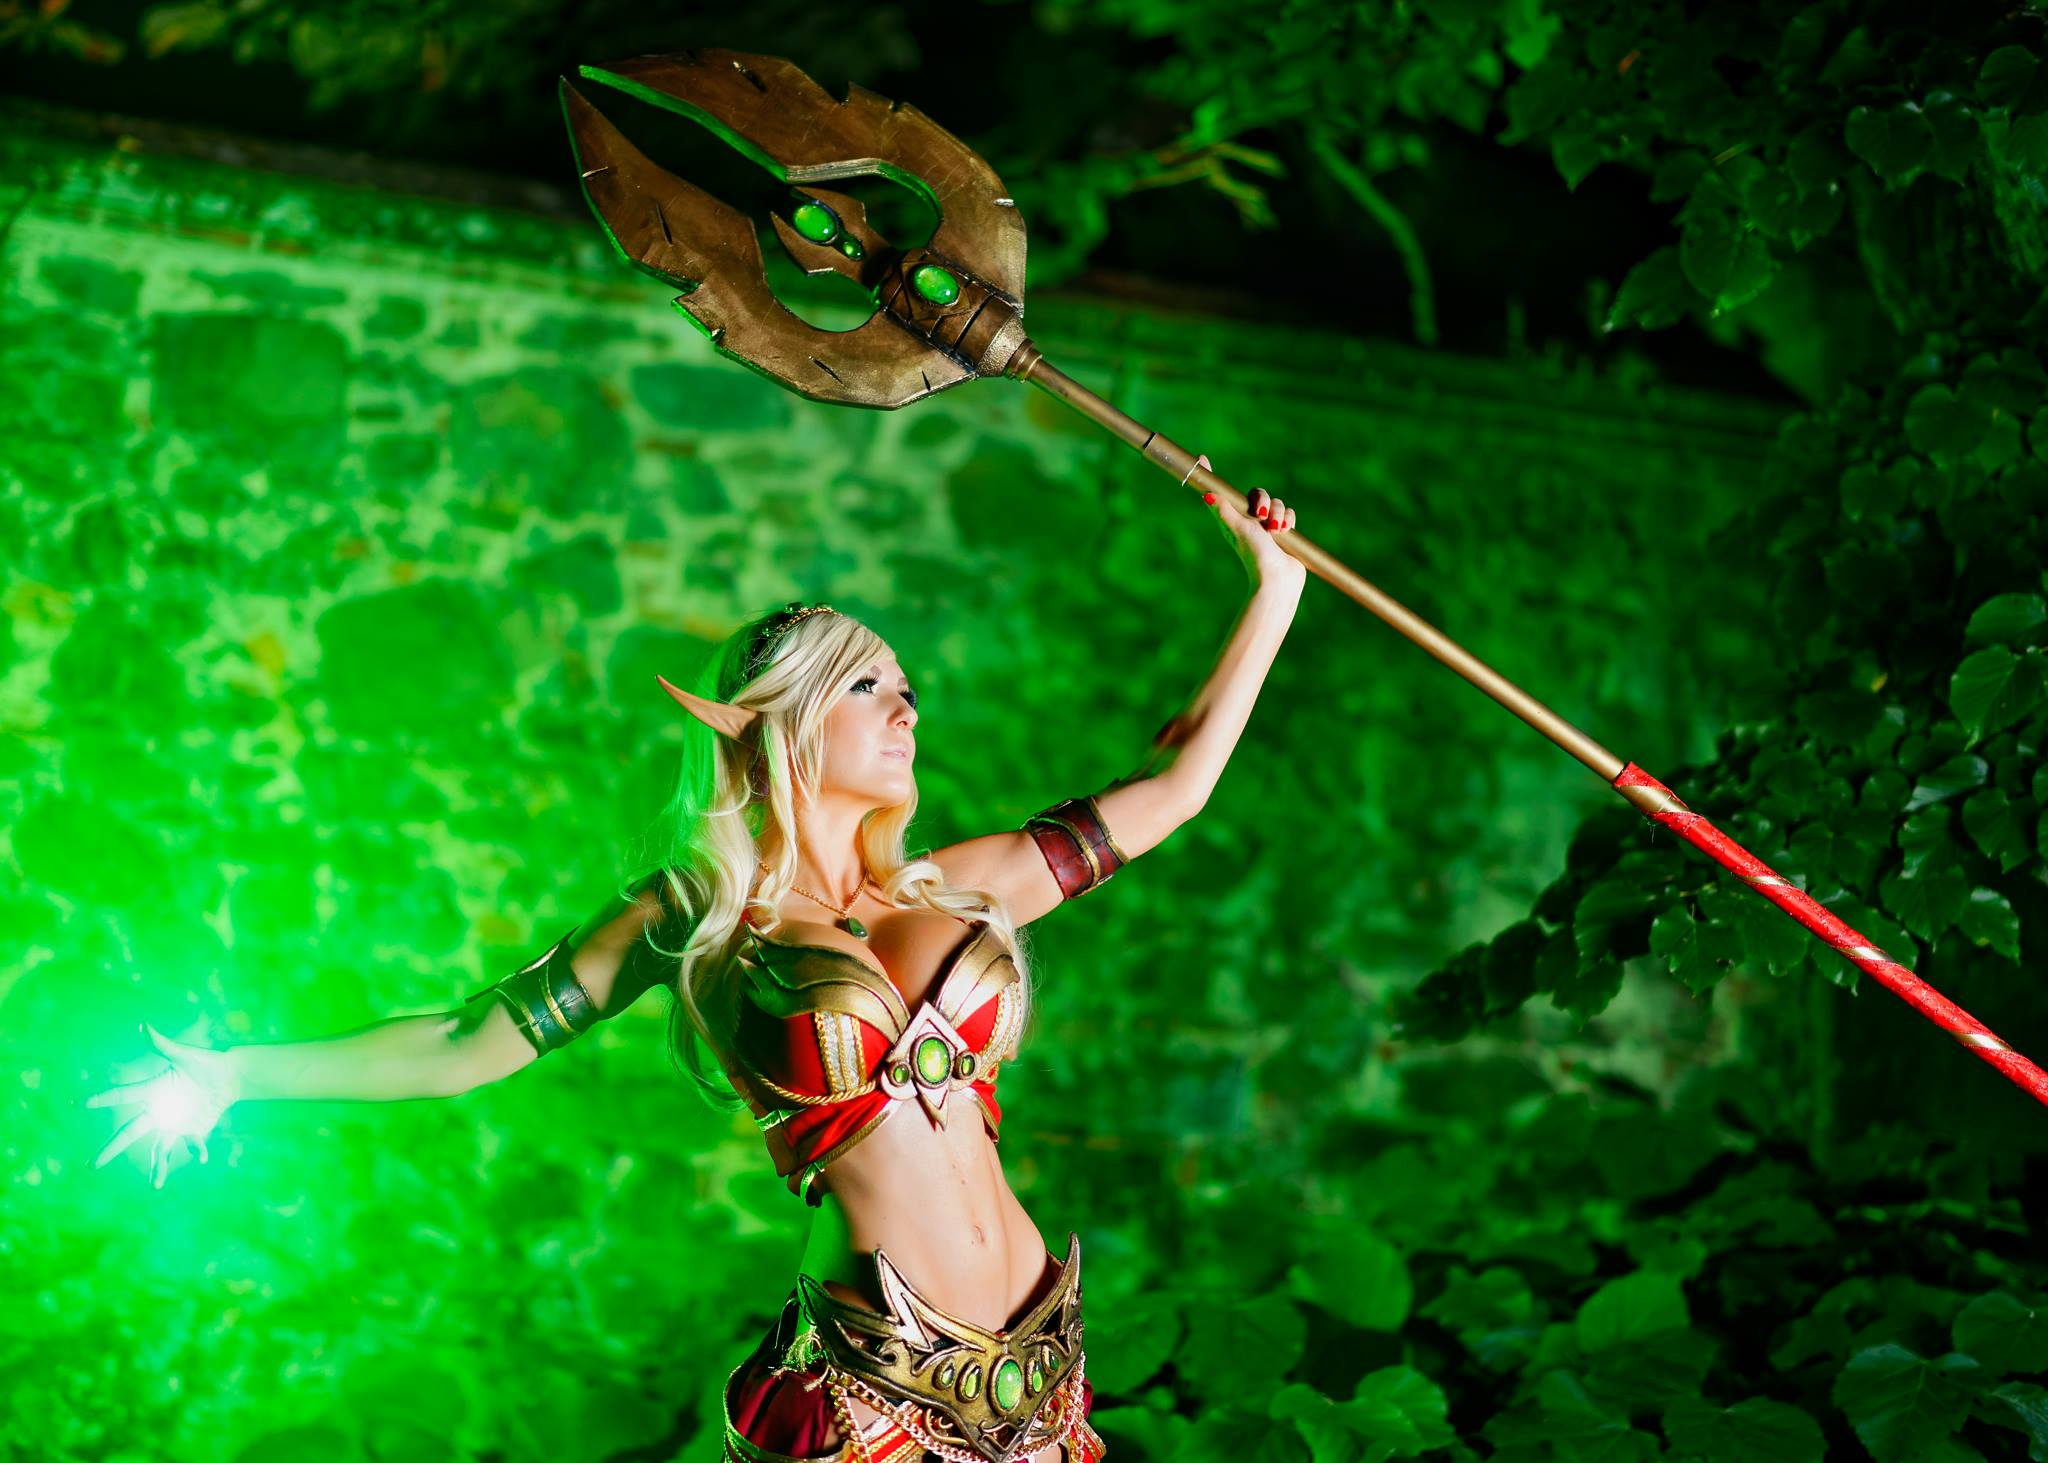 World of warcraft preteen elf costume pictures erotic video